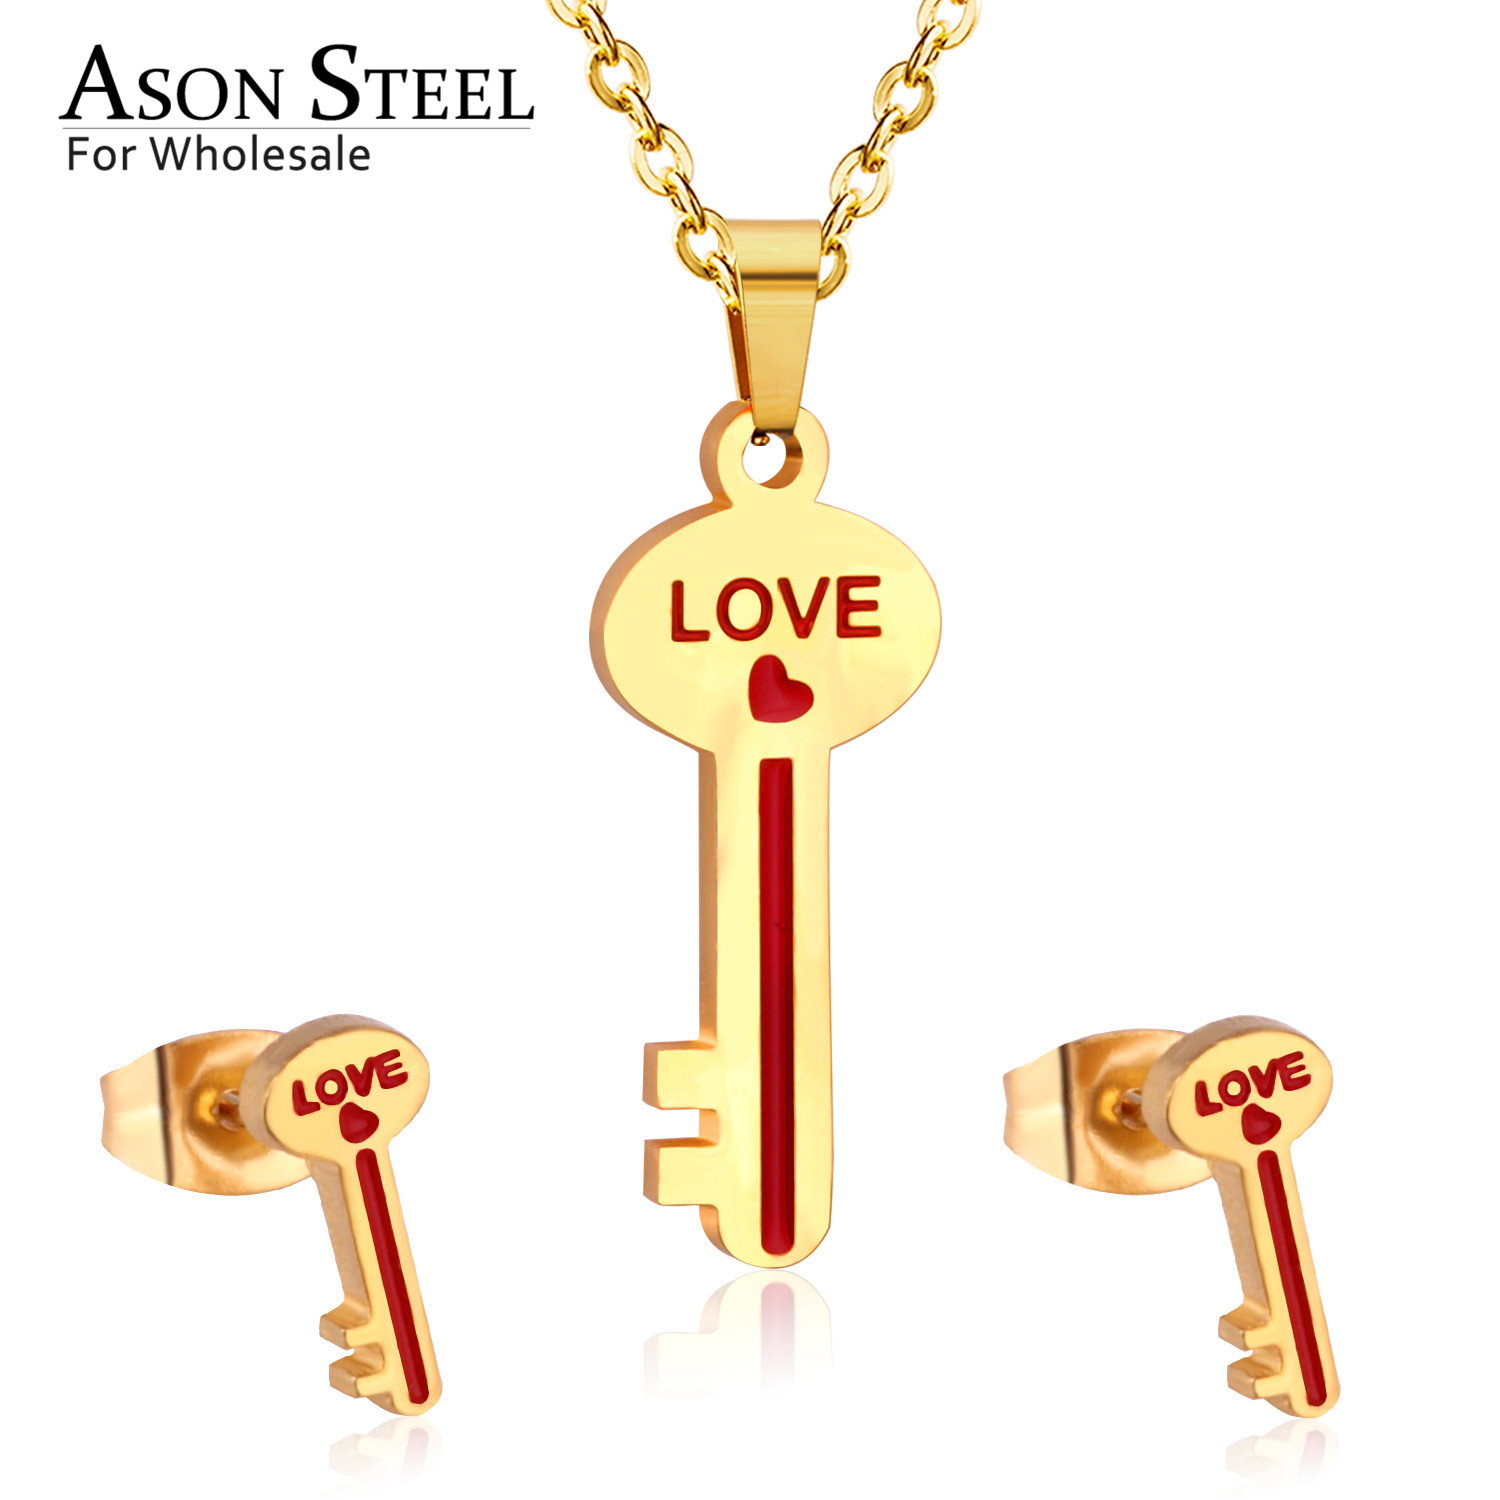 ASONSTEEL Wedding-Jewelry-Set Stud-Earring Pendant Necklace 316l-Stainless-Steel Bridal-Forever